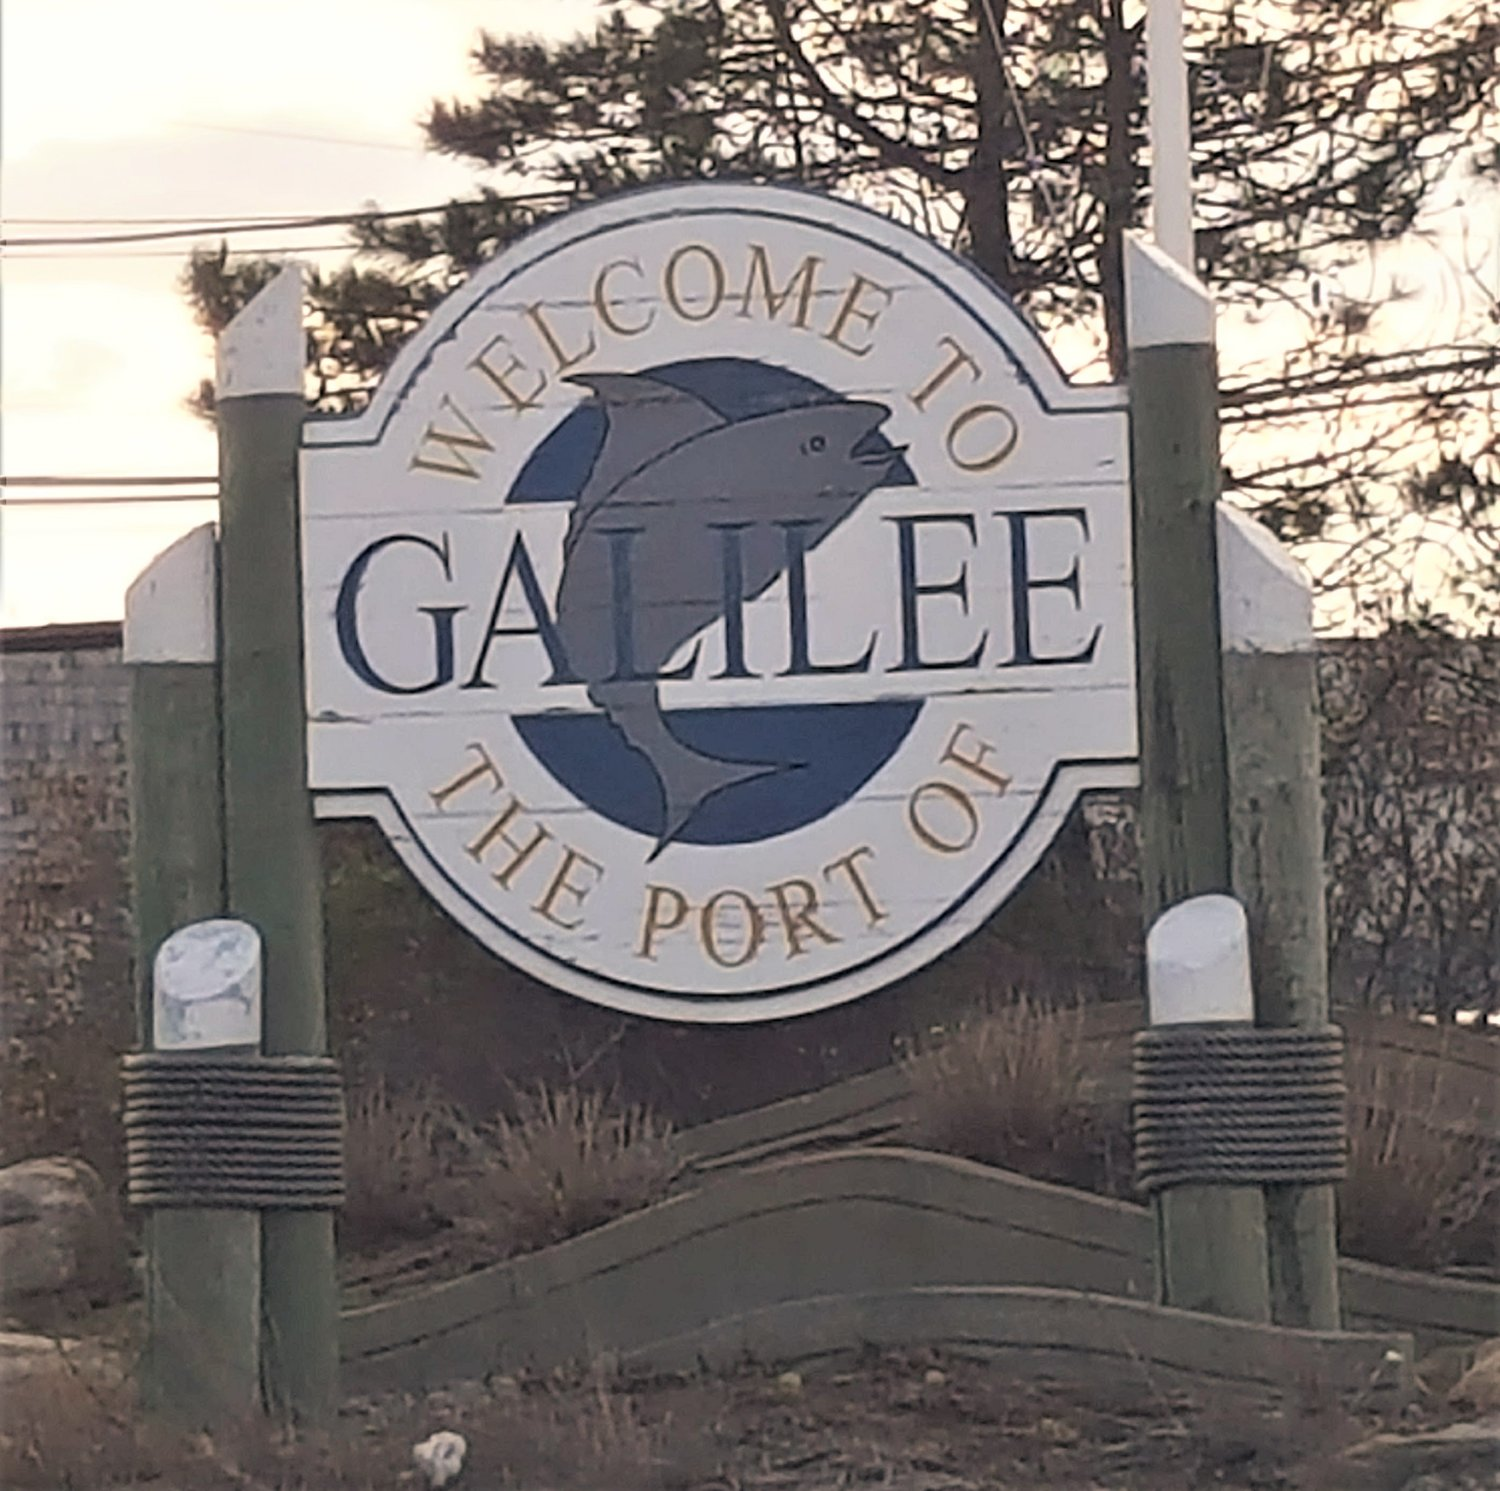 Welcome to Port of Galilee structure in Galilee, RI.  Greets visitors to that sea port town.  Could a similar sign replace the art piece in Watchemoket Square, EP?